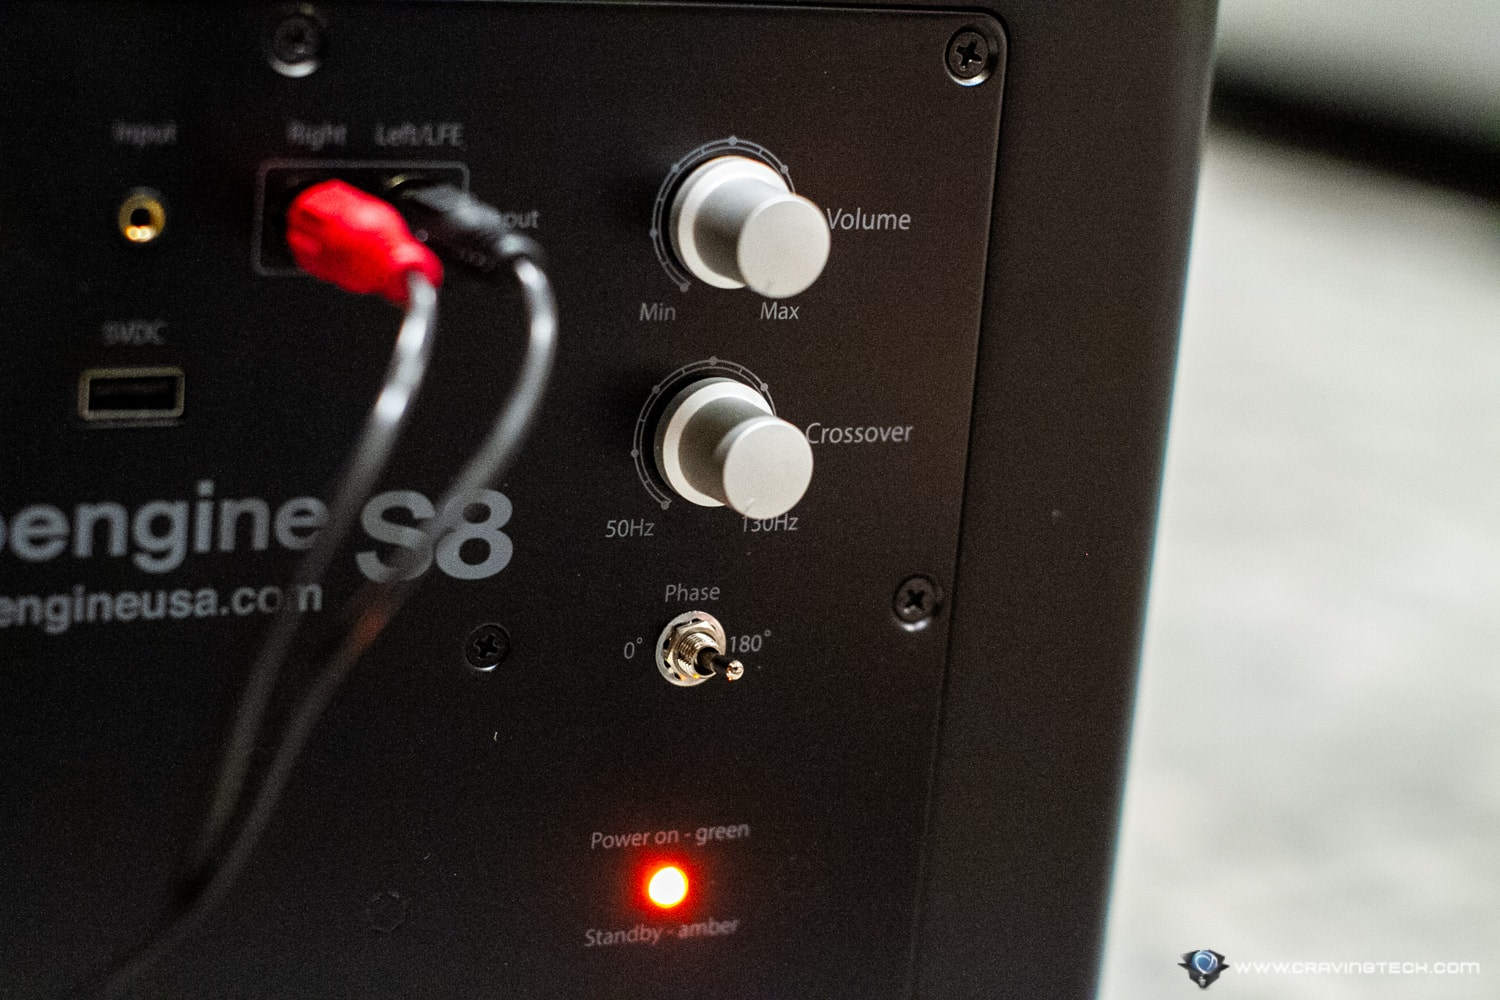 AudioEngine S8 Subwoofer Controls